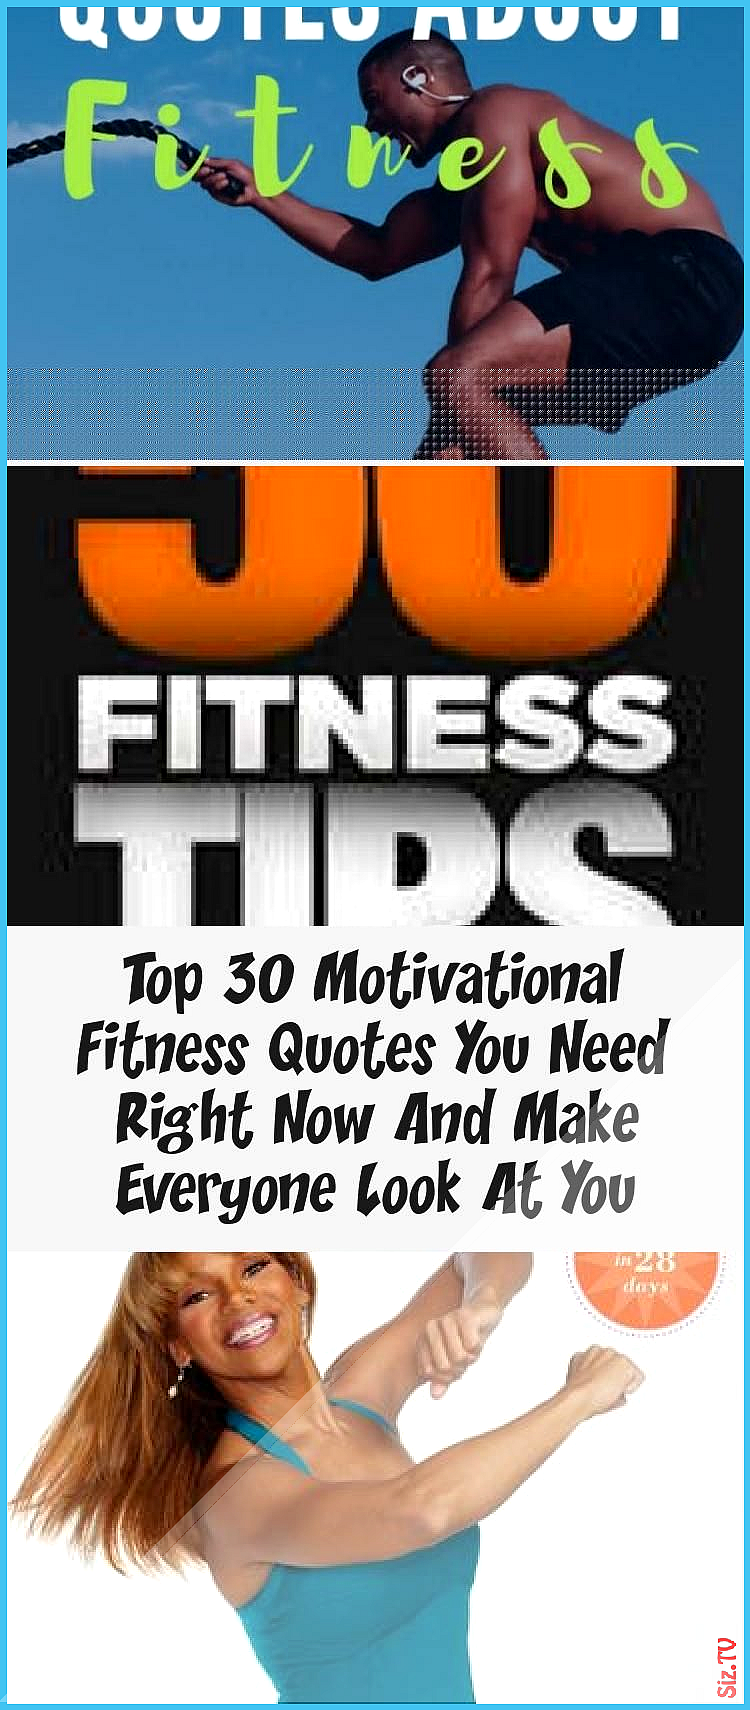 Top 30 Motivational Fitness Quotes You Need Right Now And Make Everyone Look At You Top 30 Motivatio...